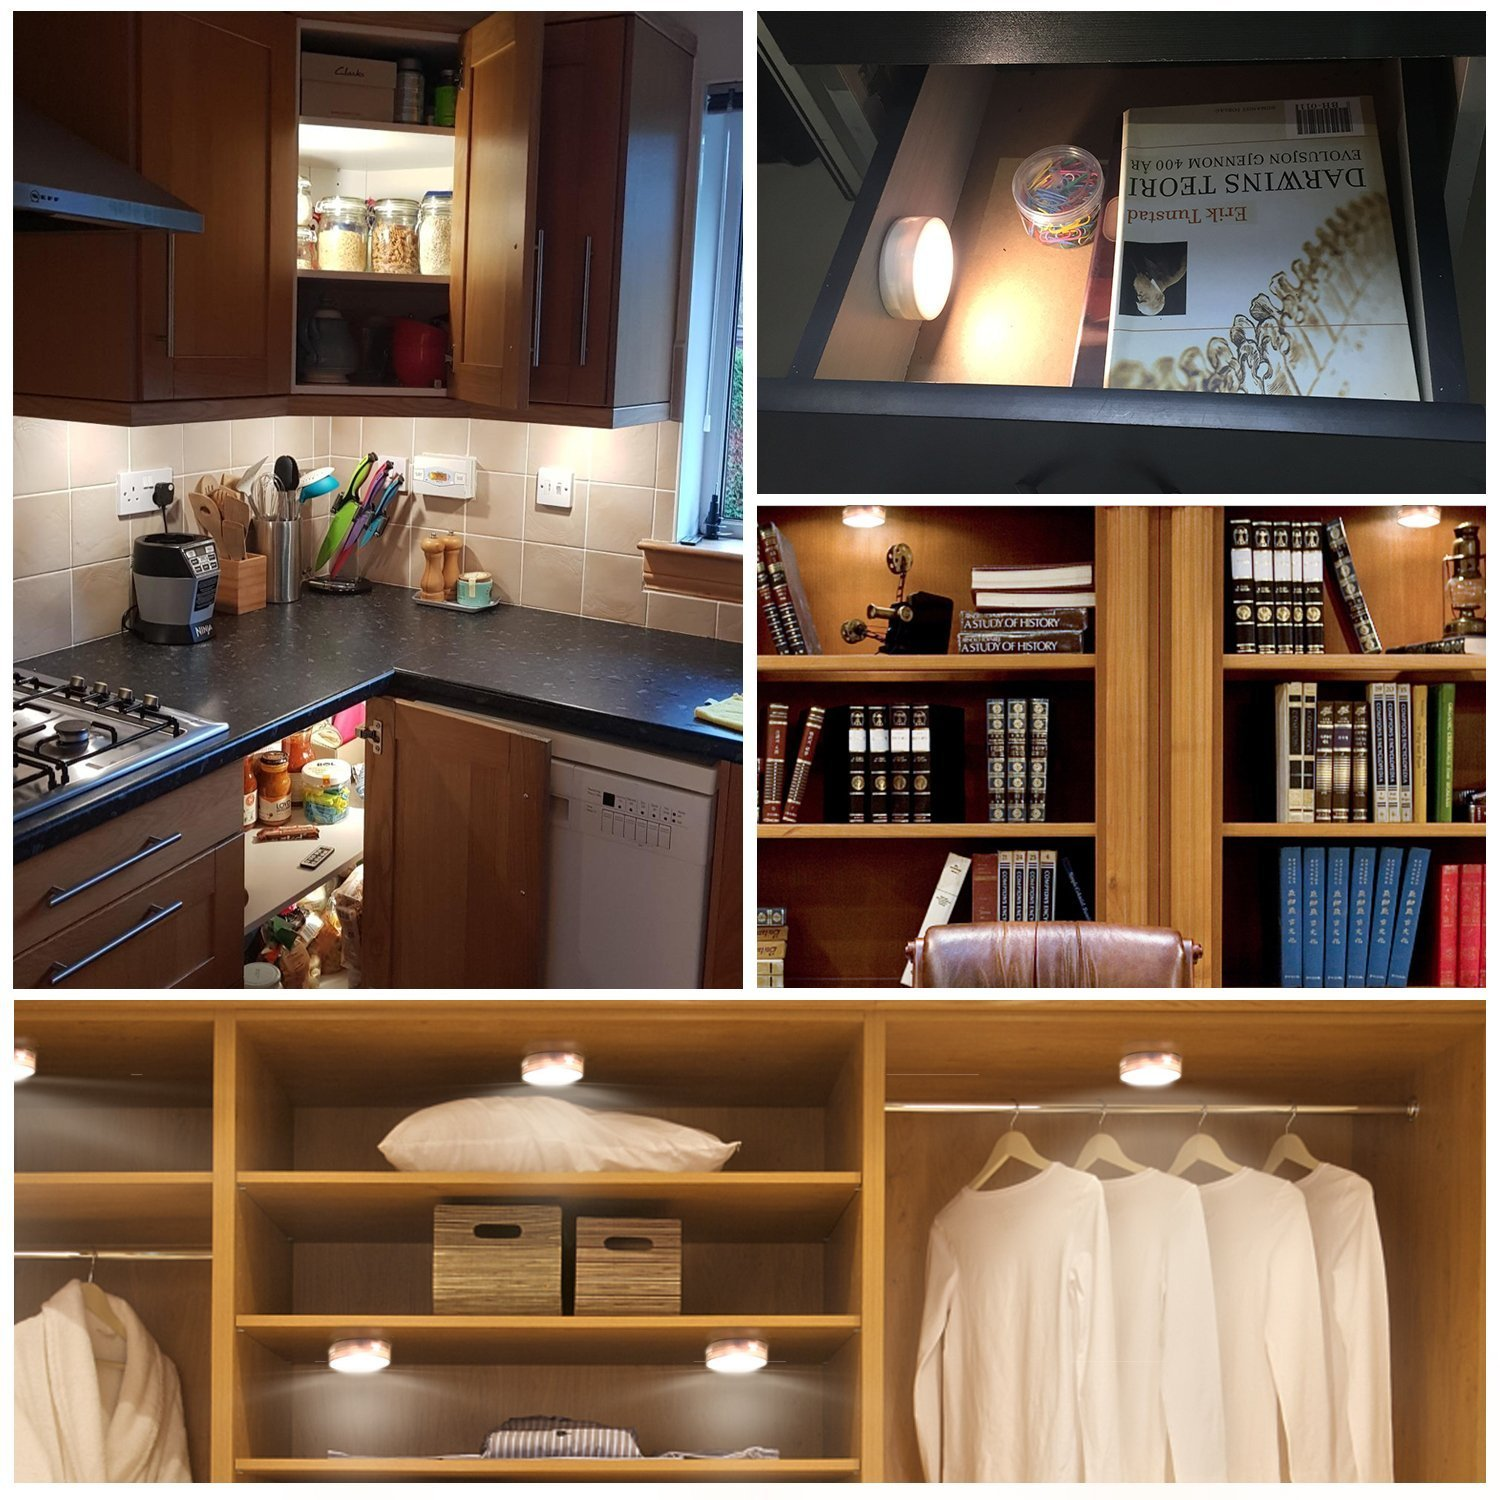 SALKING LED Under Cabinet Lighting, Wireless LED Puck Lights with Remote Control, Dimmable Closet Light, Battery Powered Under Counter Lights for Kitchen, Natural White 6 Pack by Salking (Image #6)